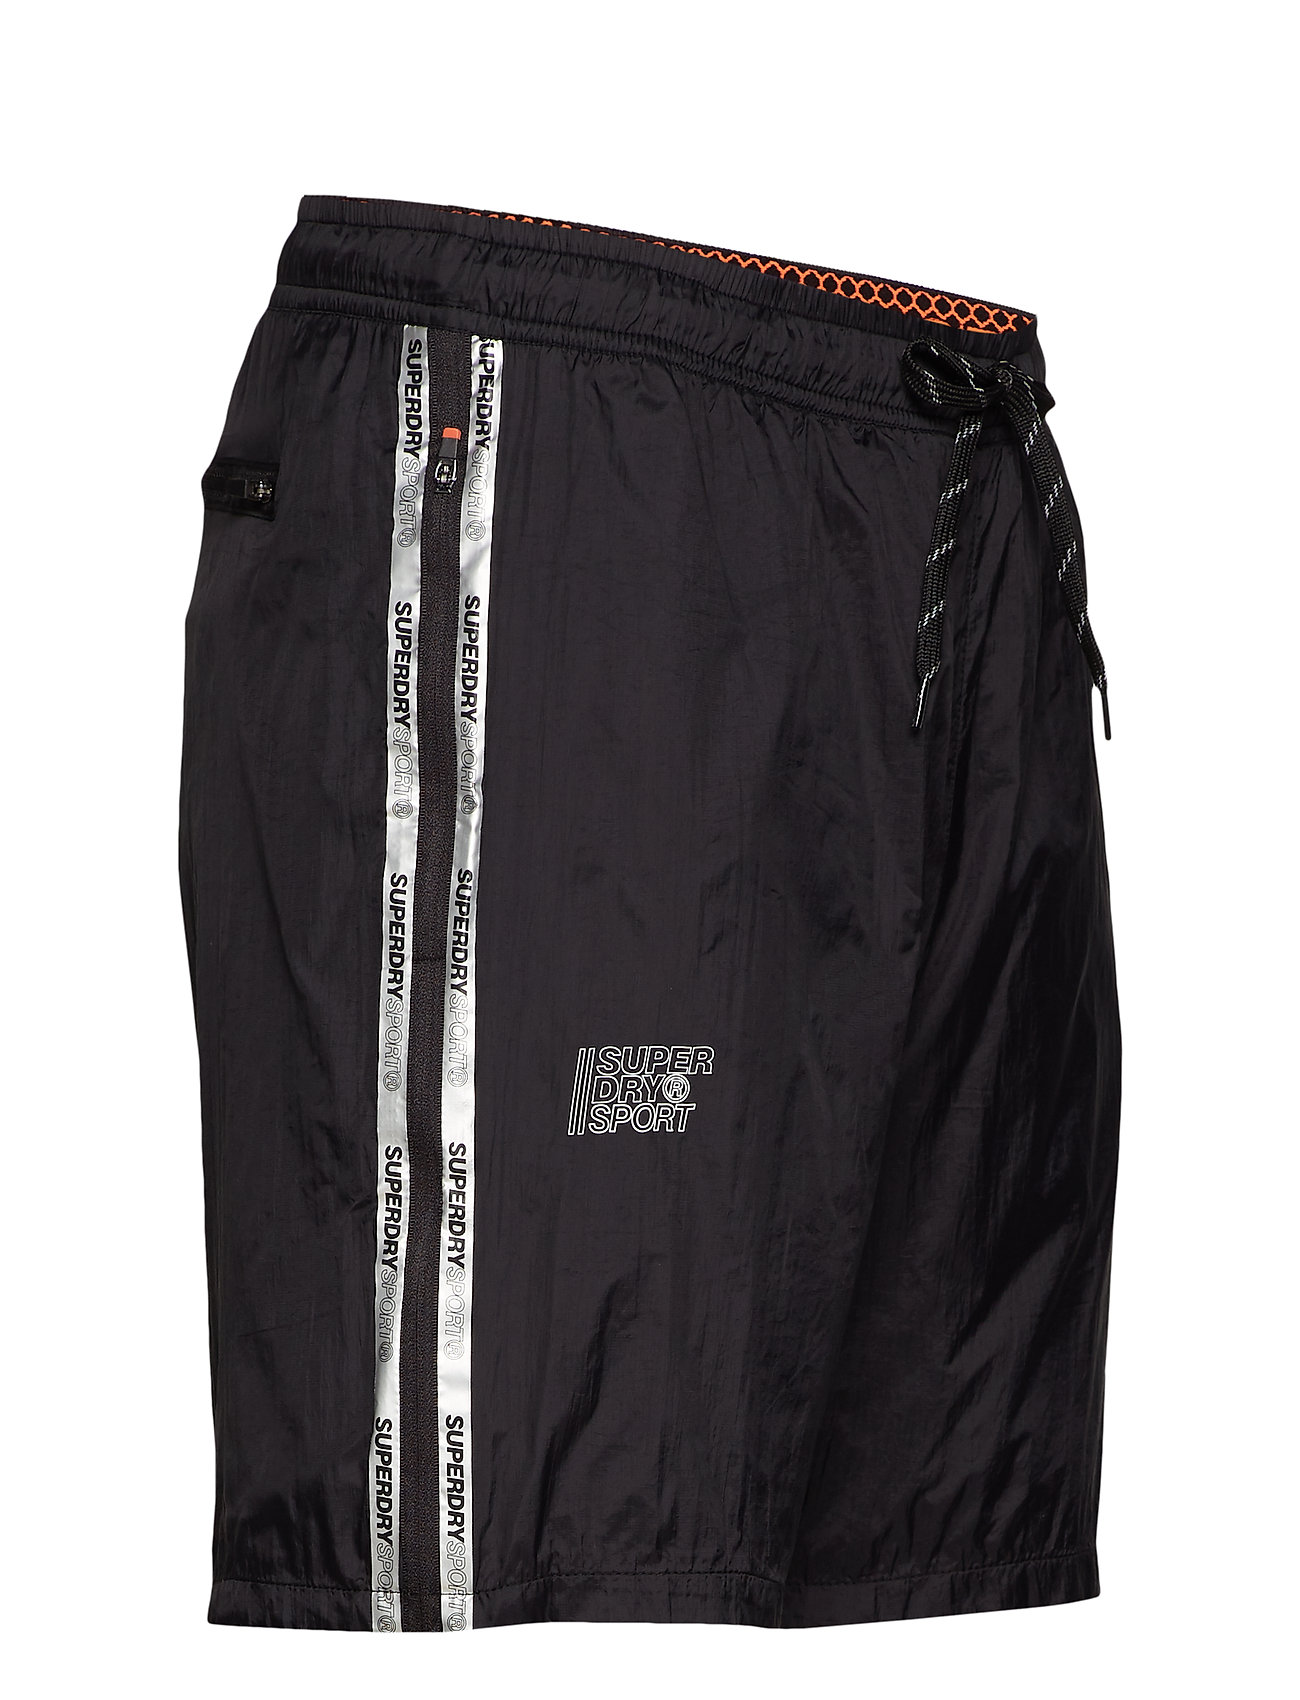 a716cc3ff29 ... Superdry Sport ACTIVE ACTIVE ACTIVE TRAINING SHELL SHORT Shorts 746f41  ...